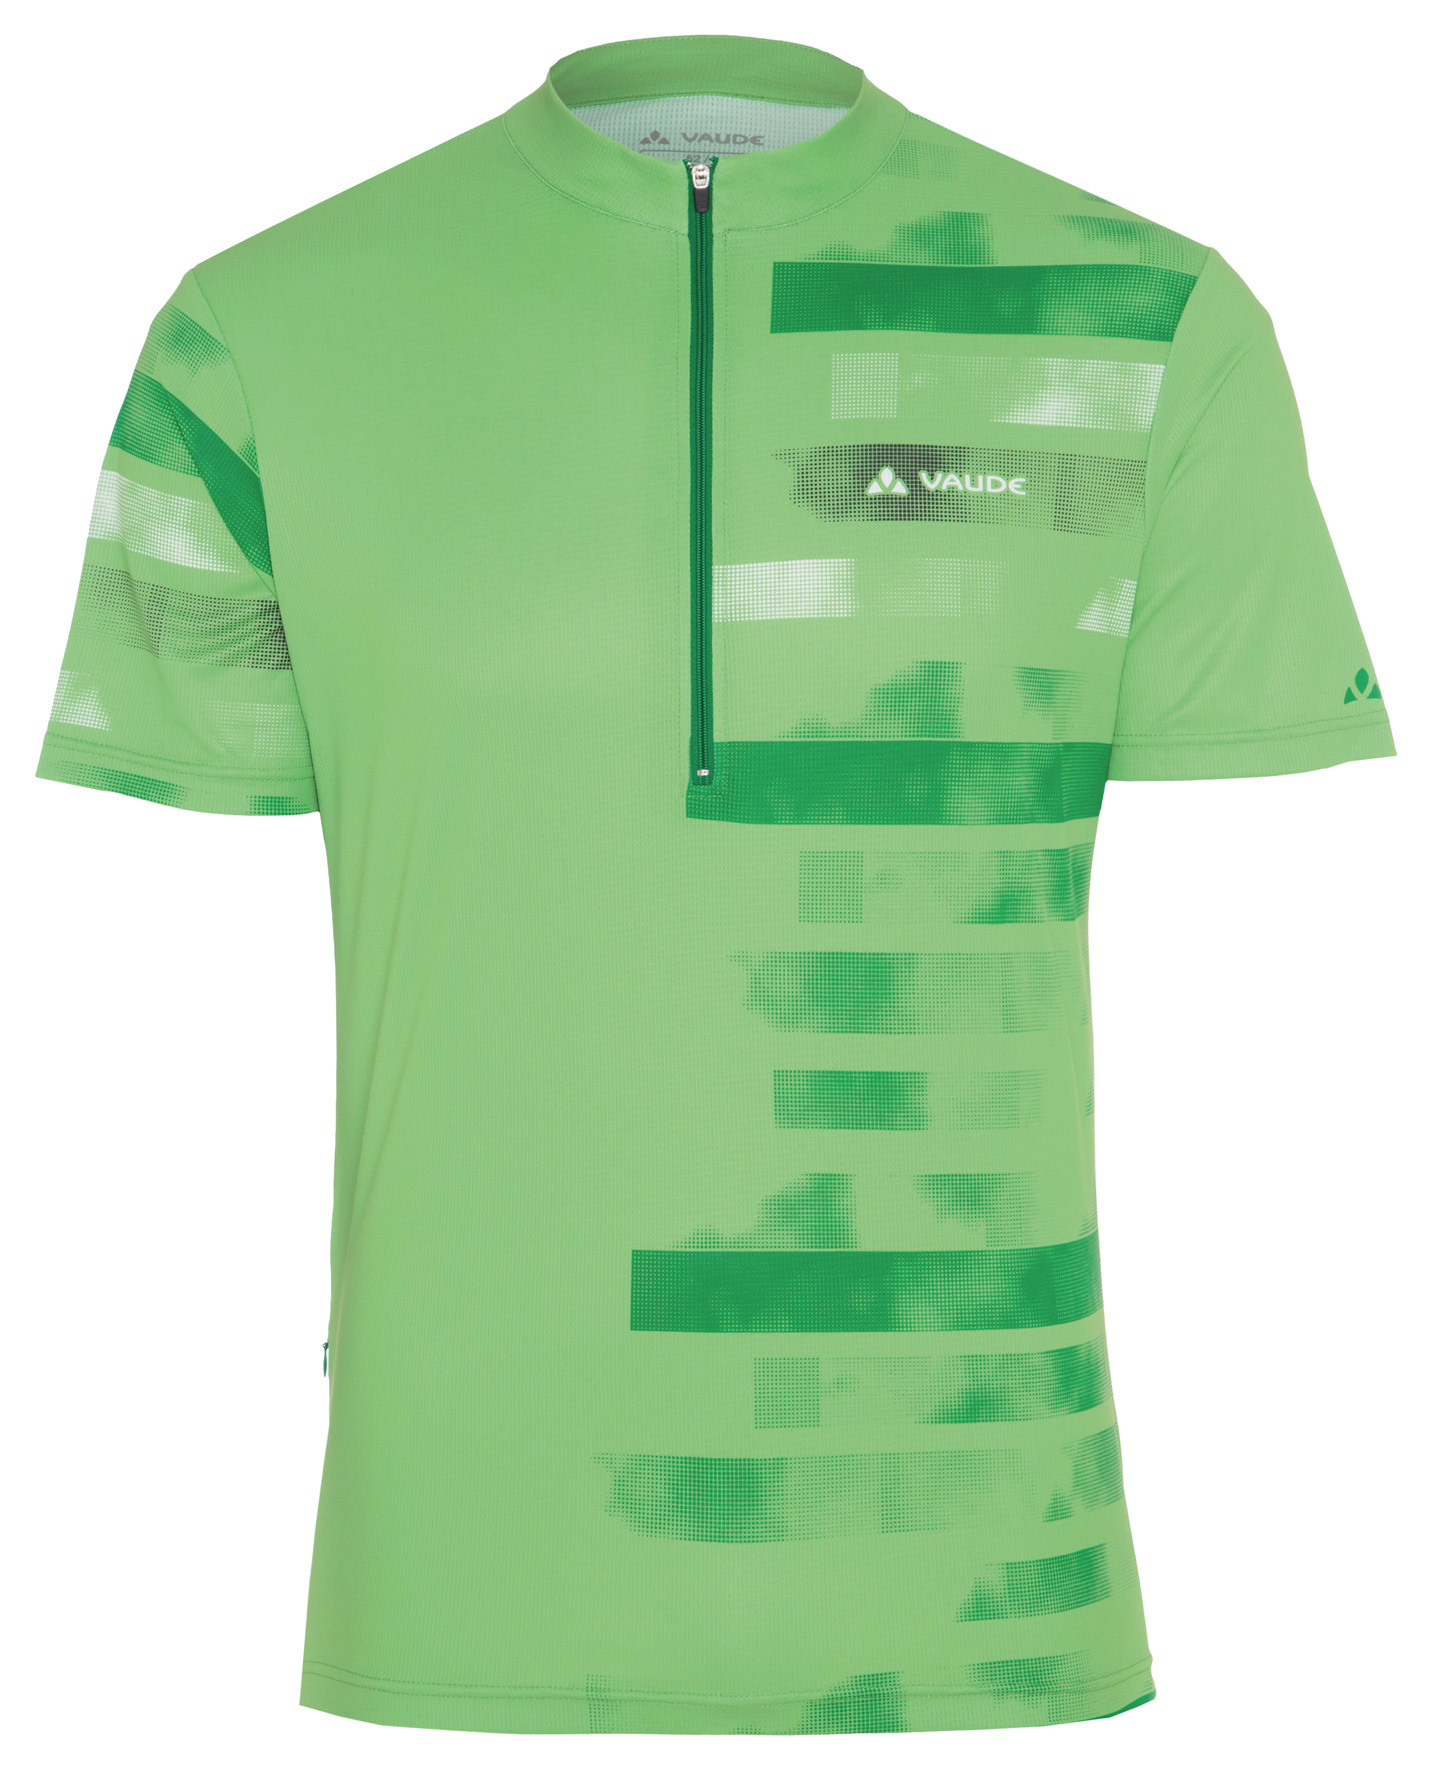 Men´s Tremalzo Shirt grasshopper Größe M - schneider-sports